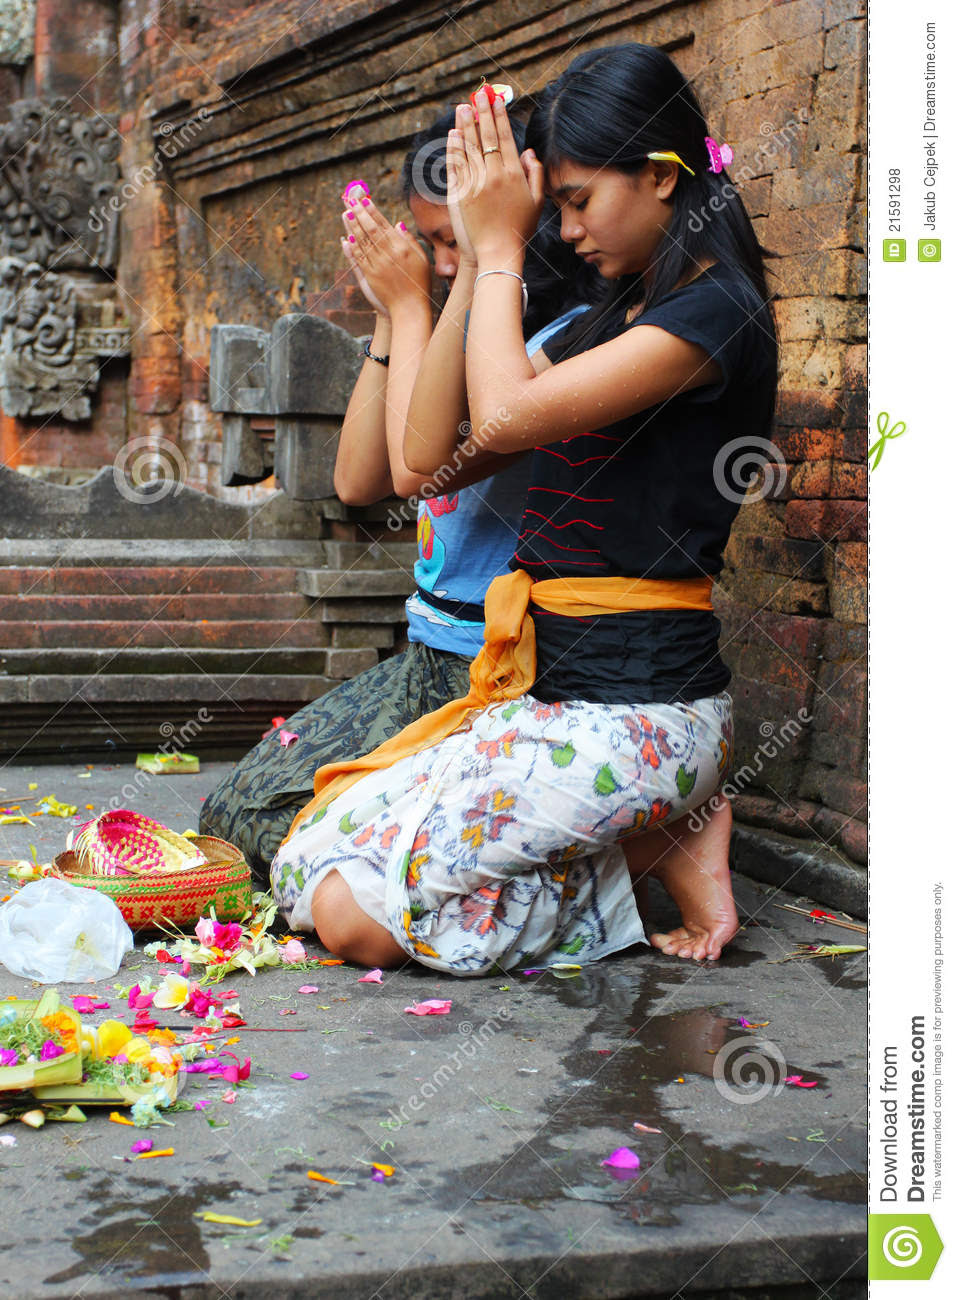 Hindu Prayers Editorial Stock Photo - Image: 21591298